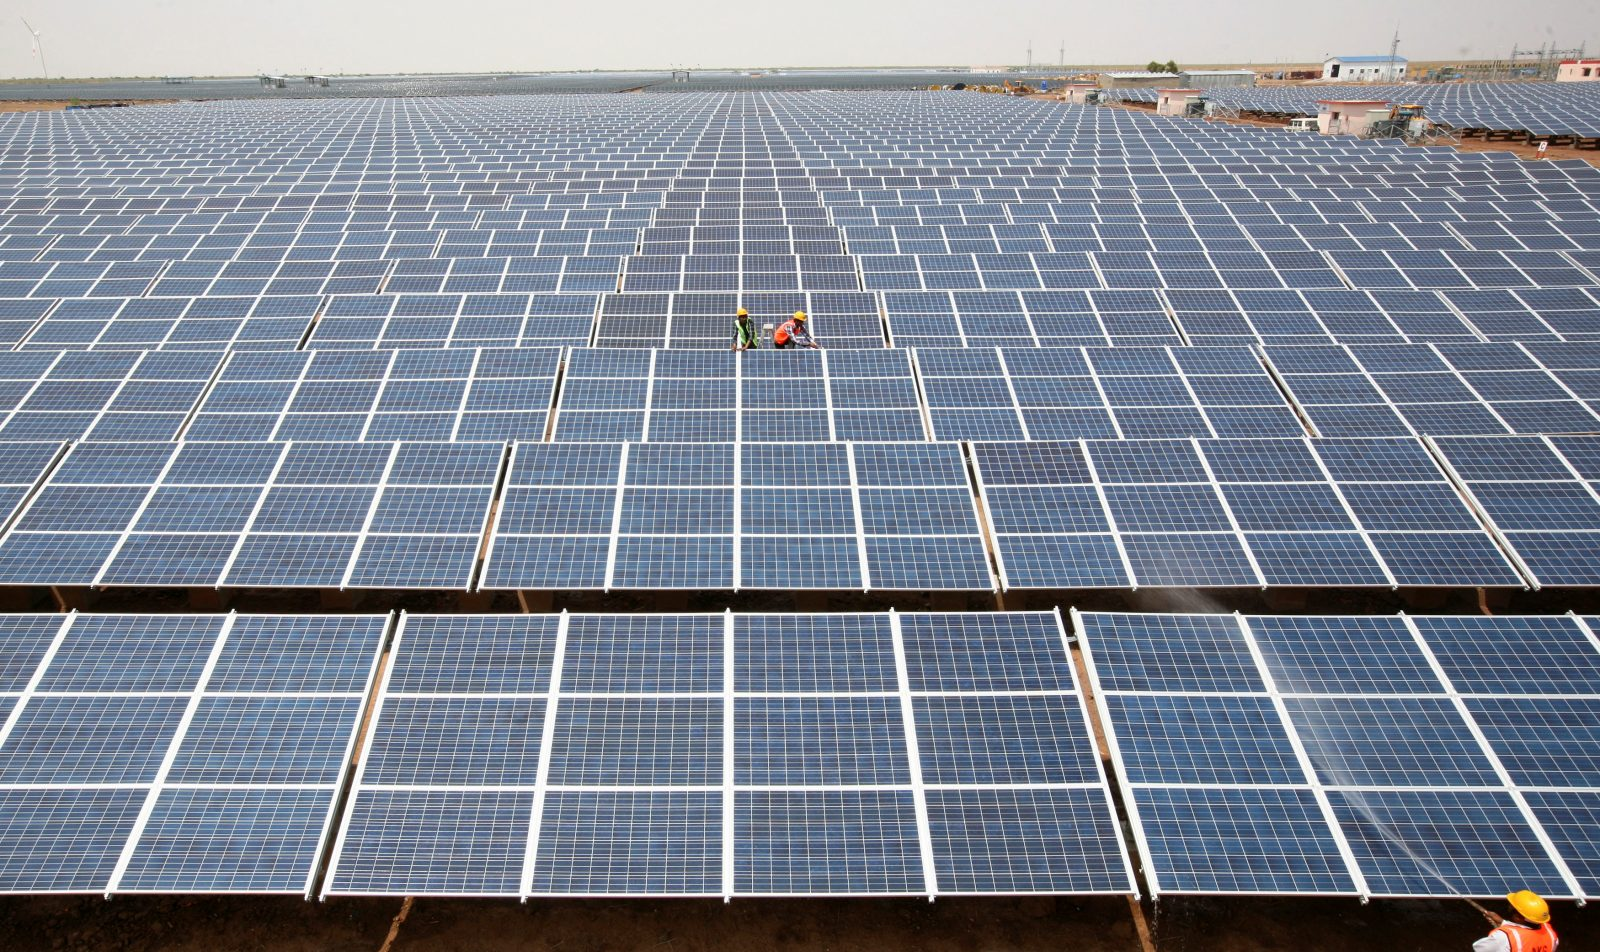 Solar Power Is Now Cheaper Than Coal Based Electricity In